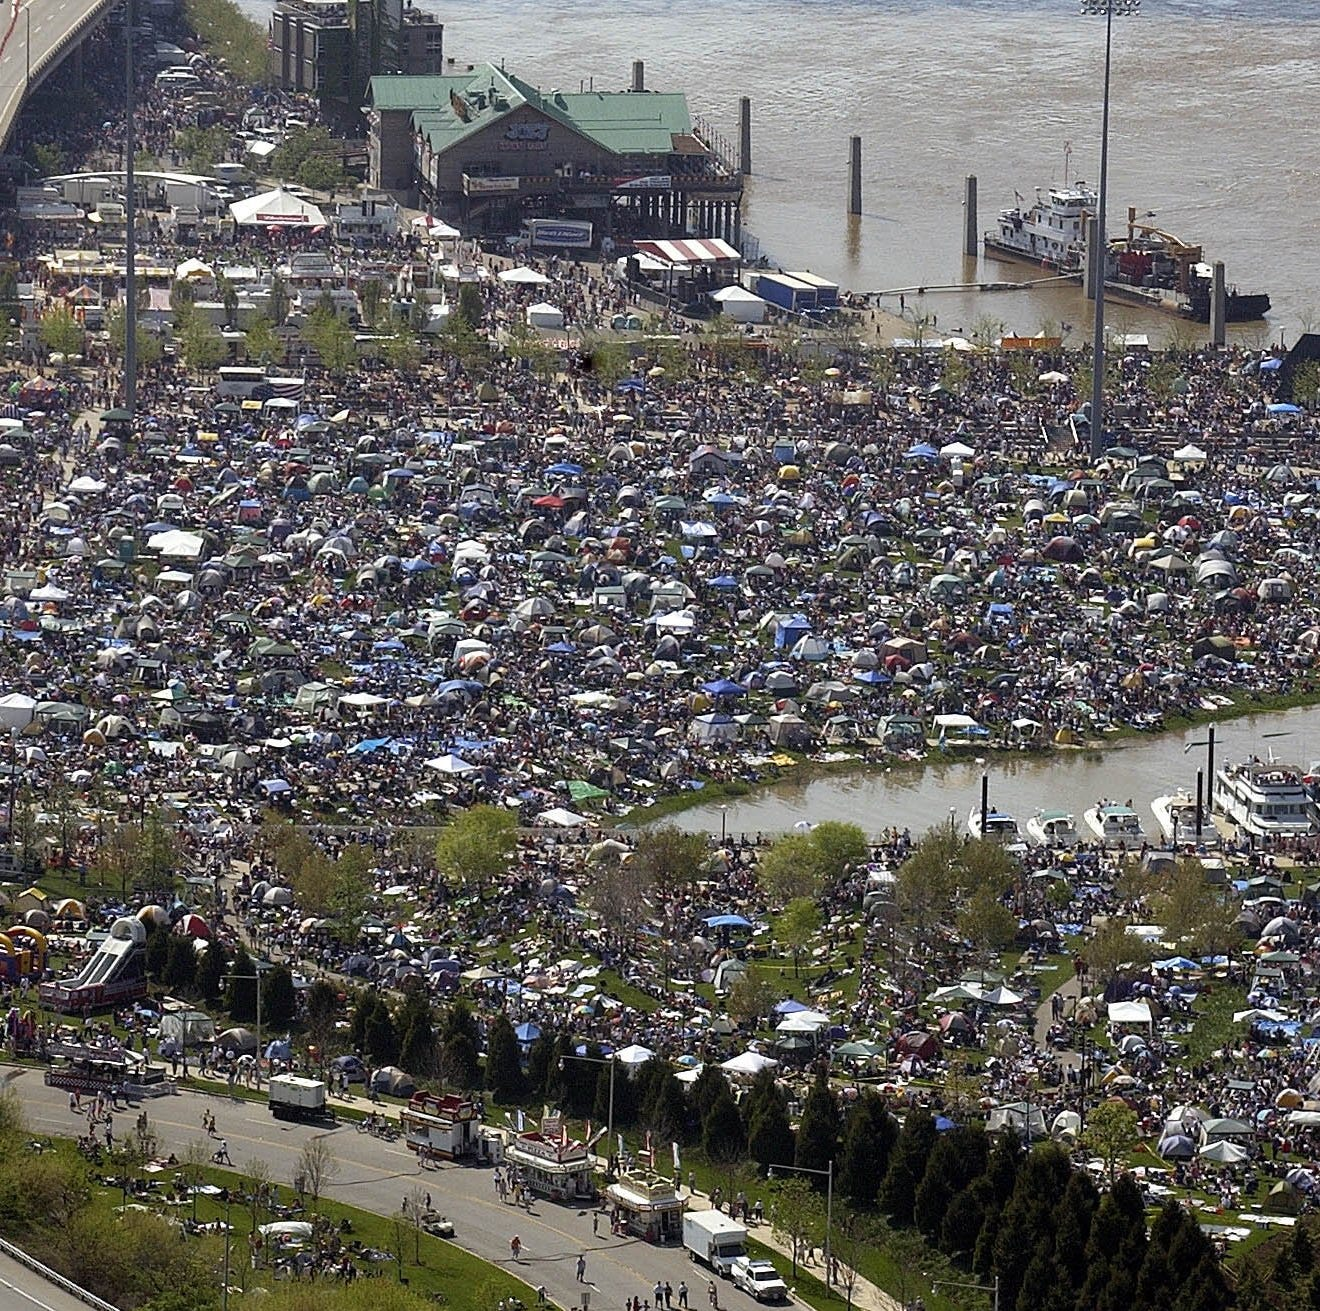 Where should I park my car at Thunder Over Louisville? Parking garage prices and more